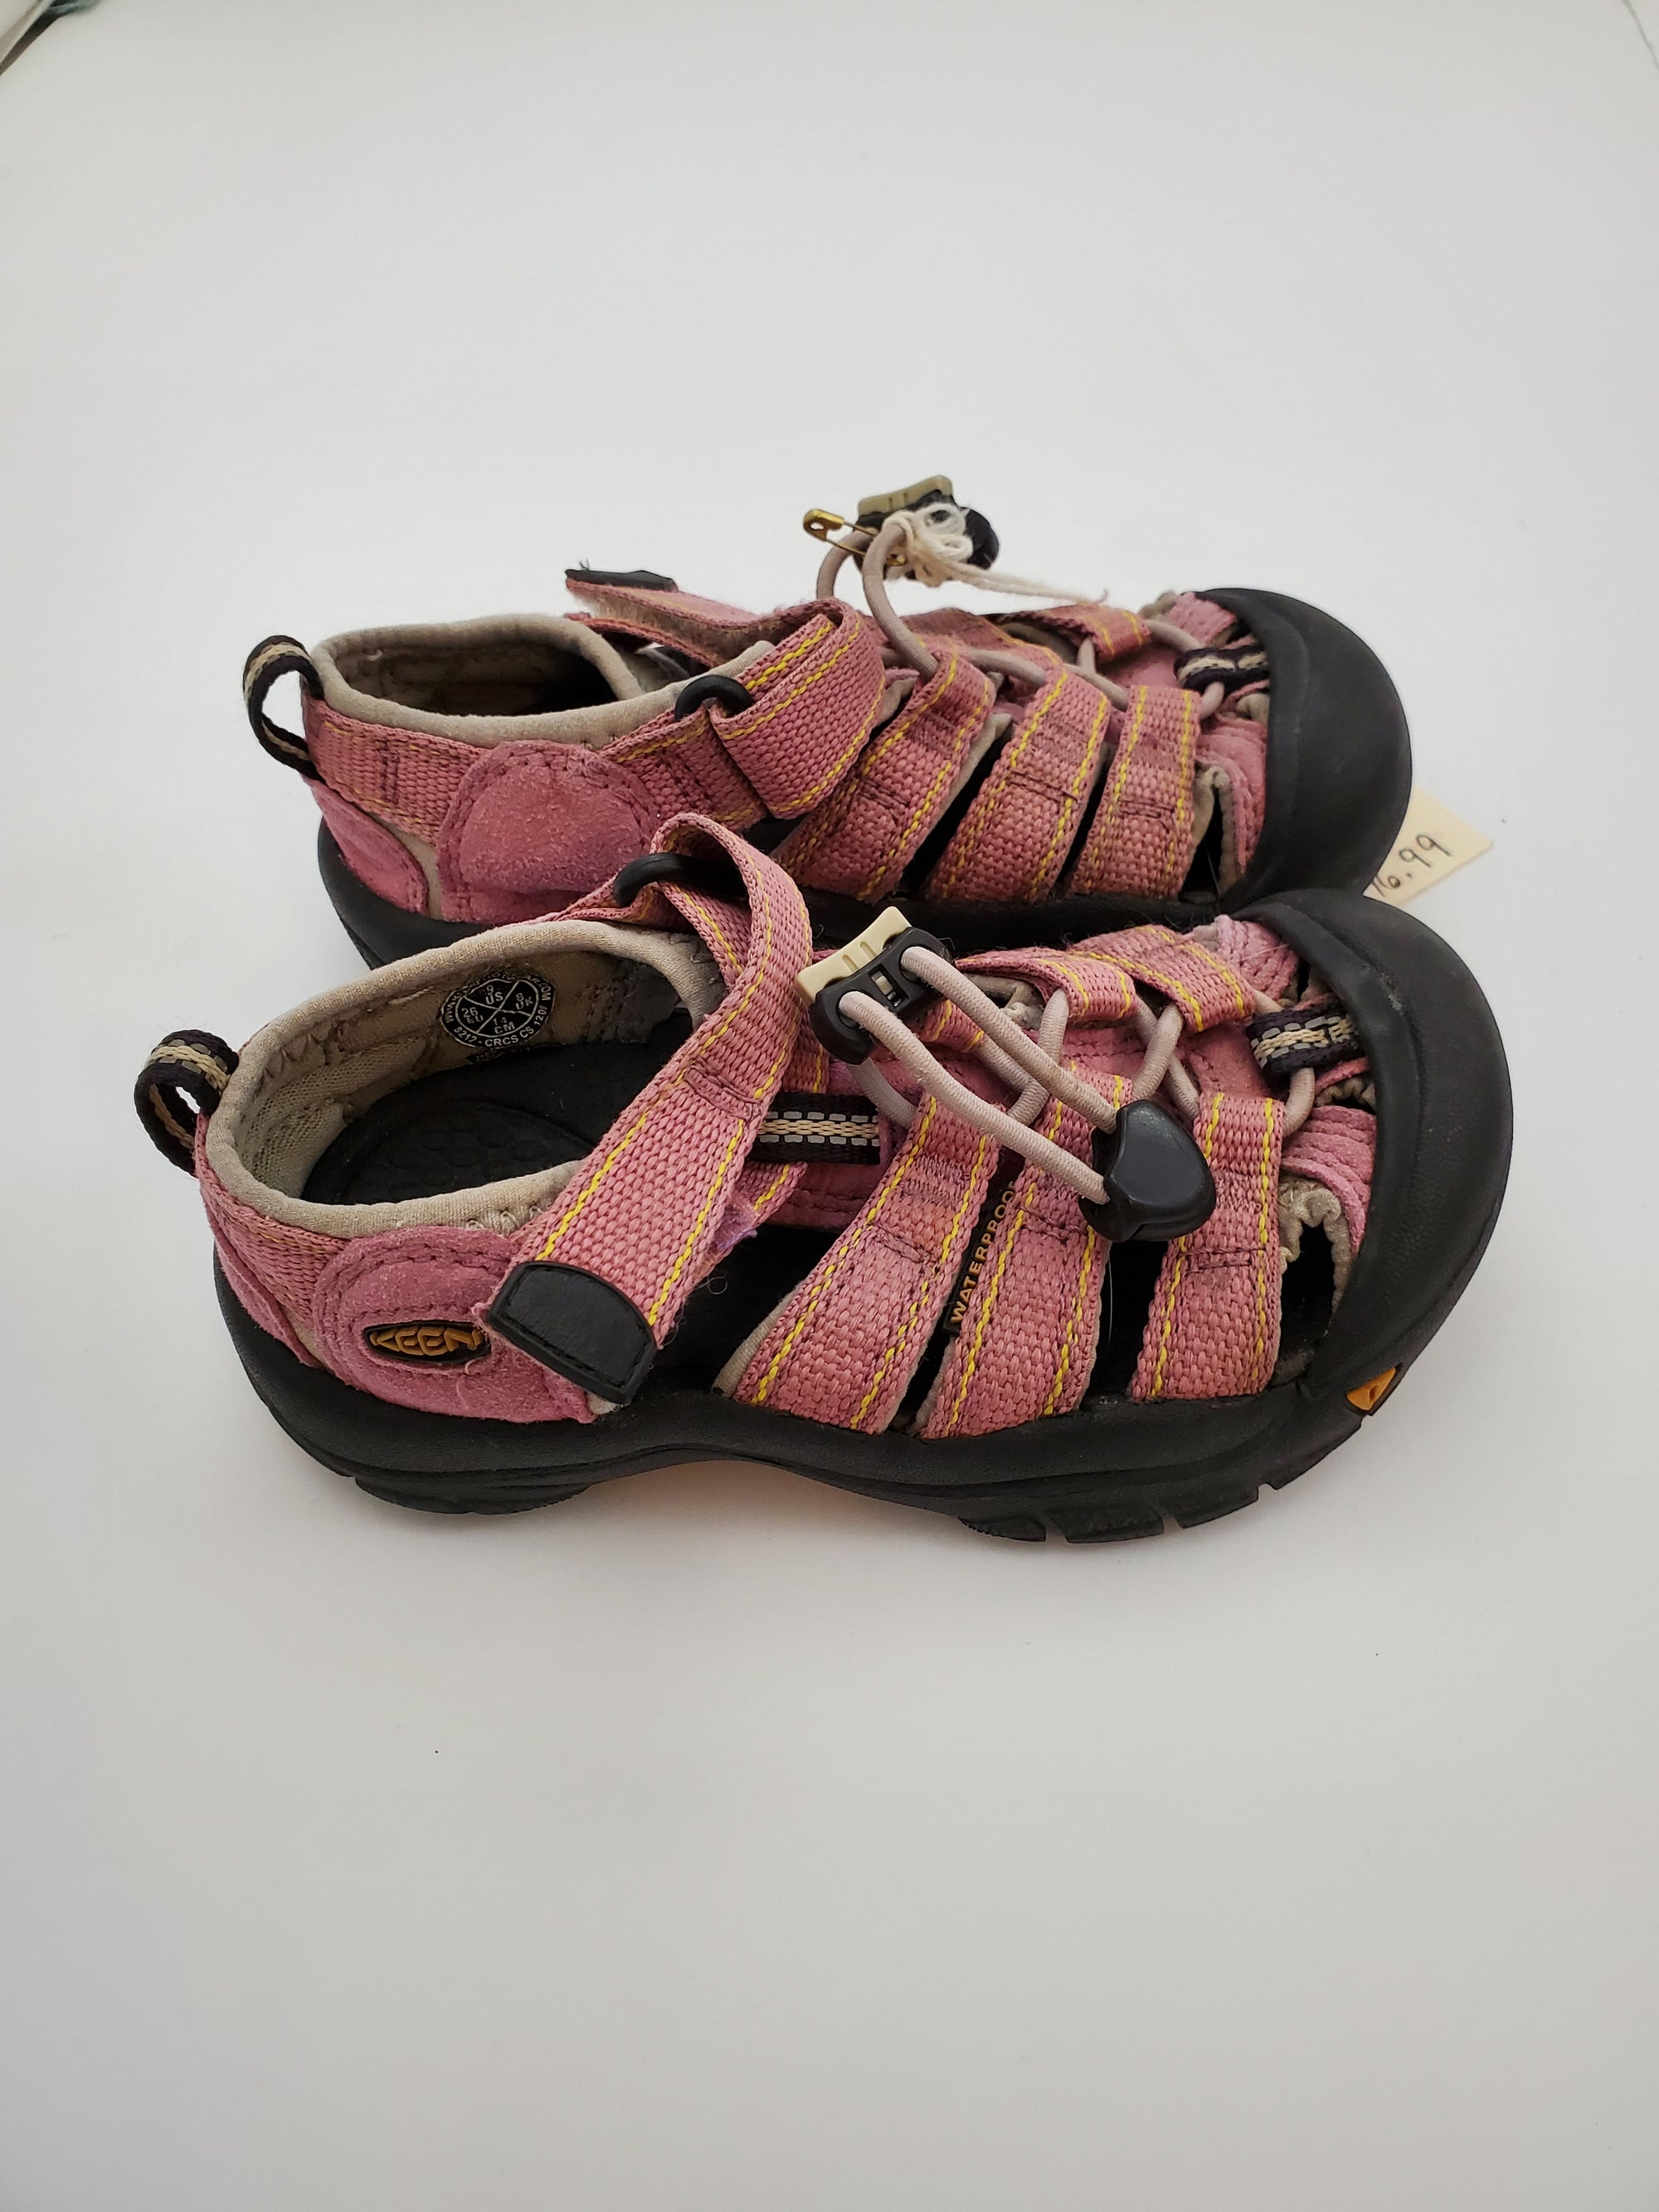 C9 Keen Sandal Shoes - Pink